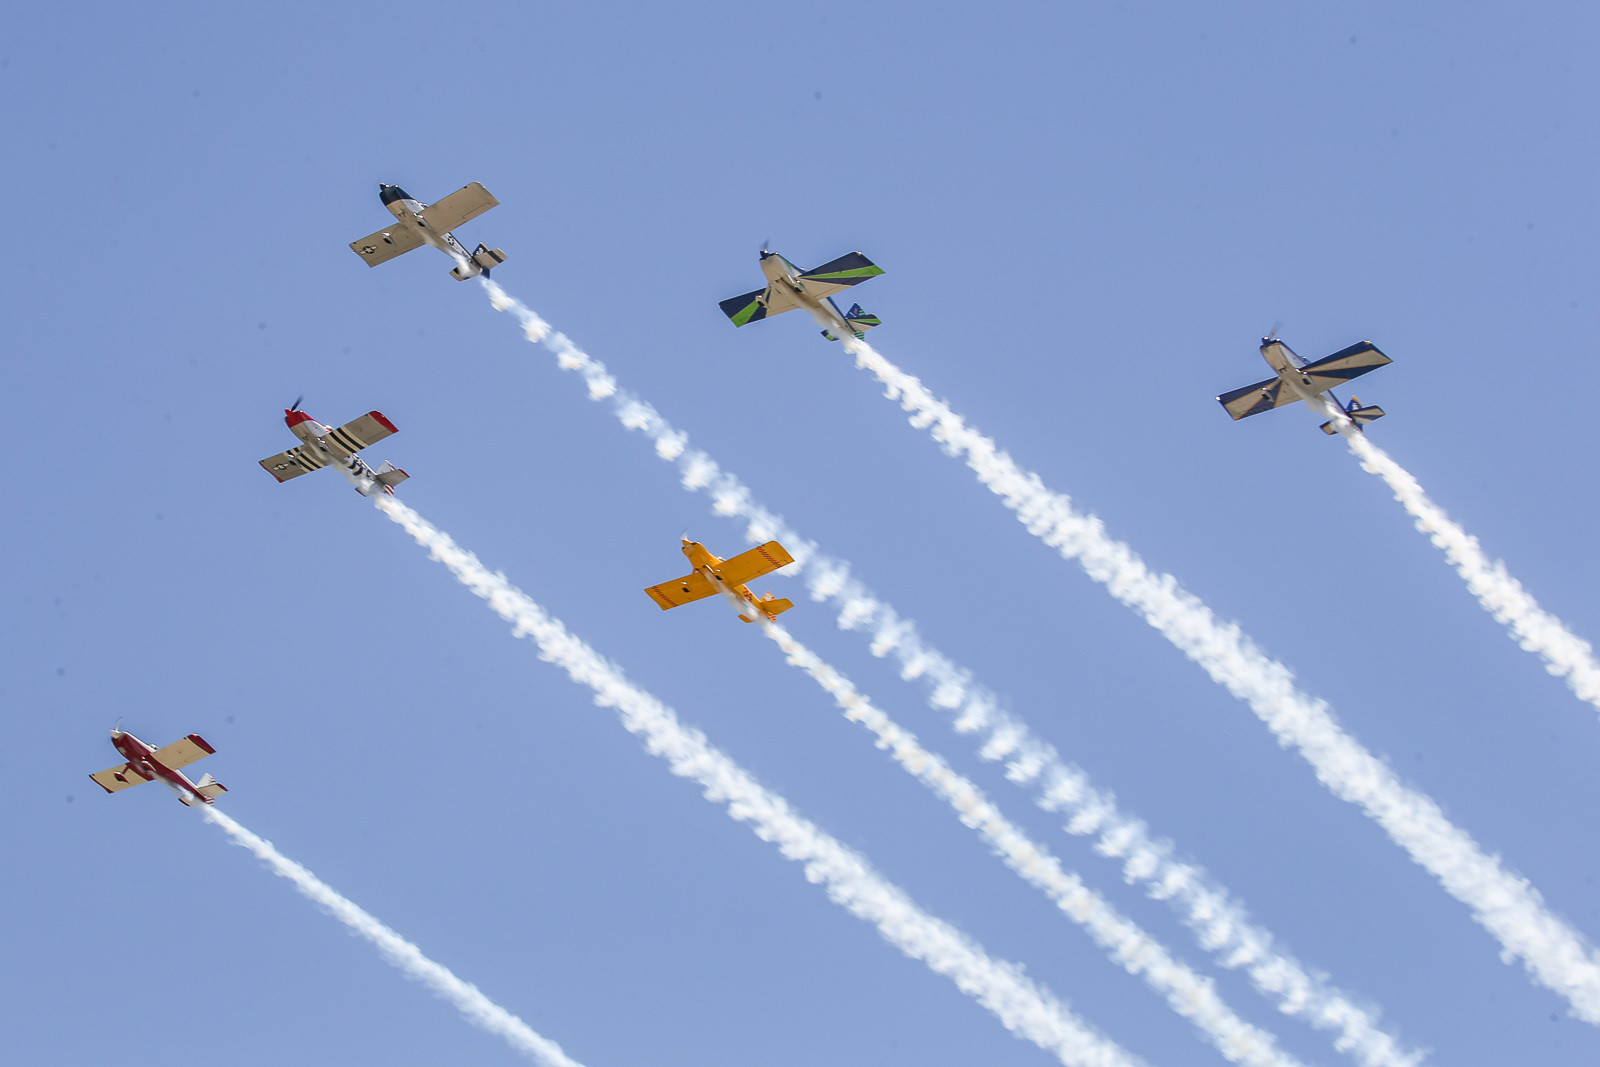 That was a cool fly-over to start the festivities at Thunder Valley.